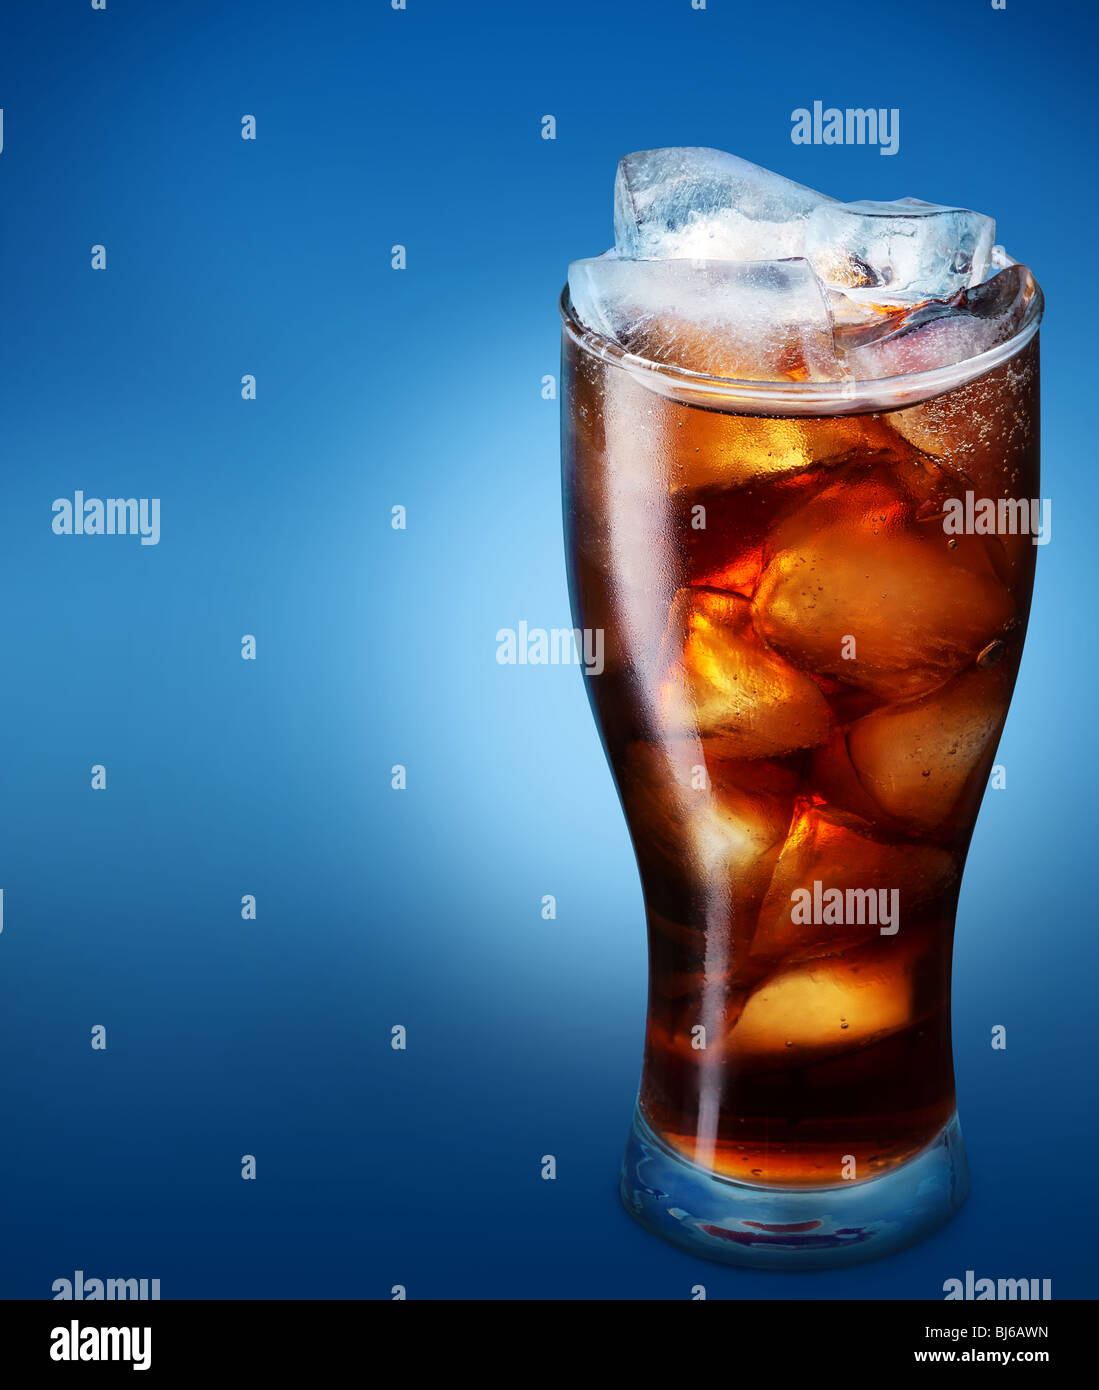 Glass of cola with ice on a blue background - Stock Image